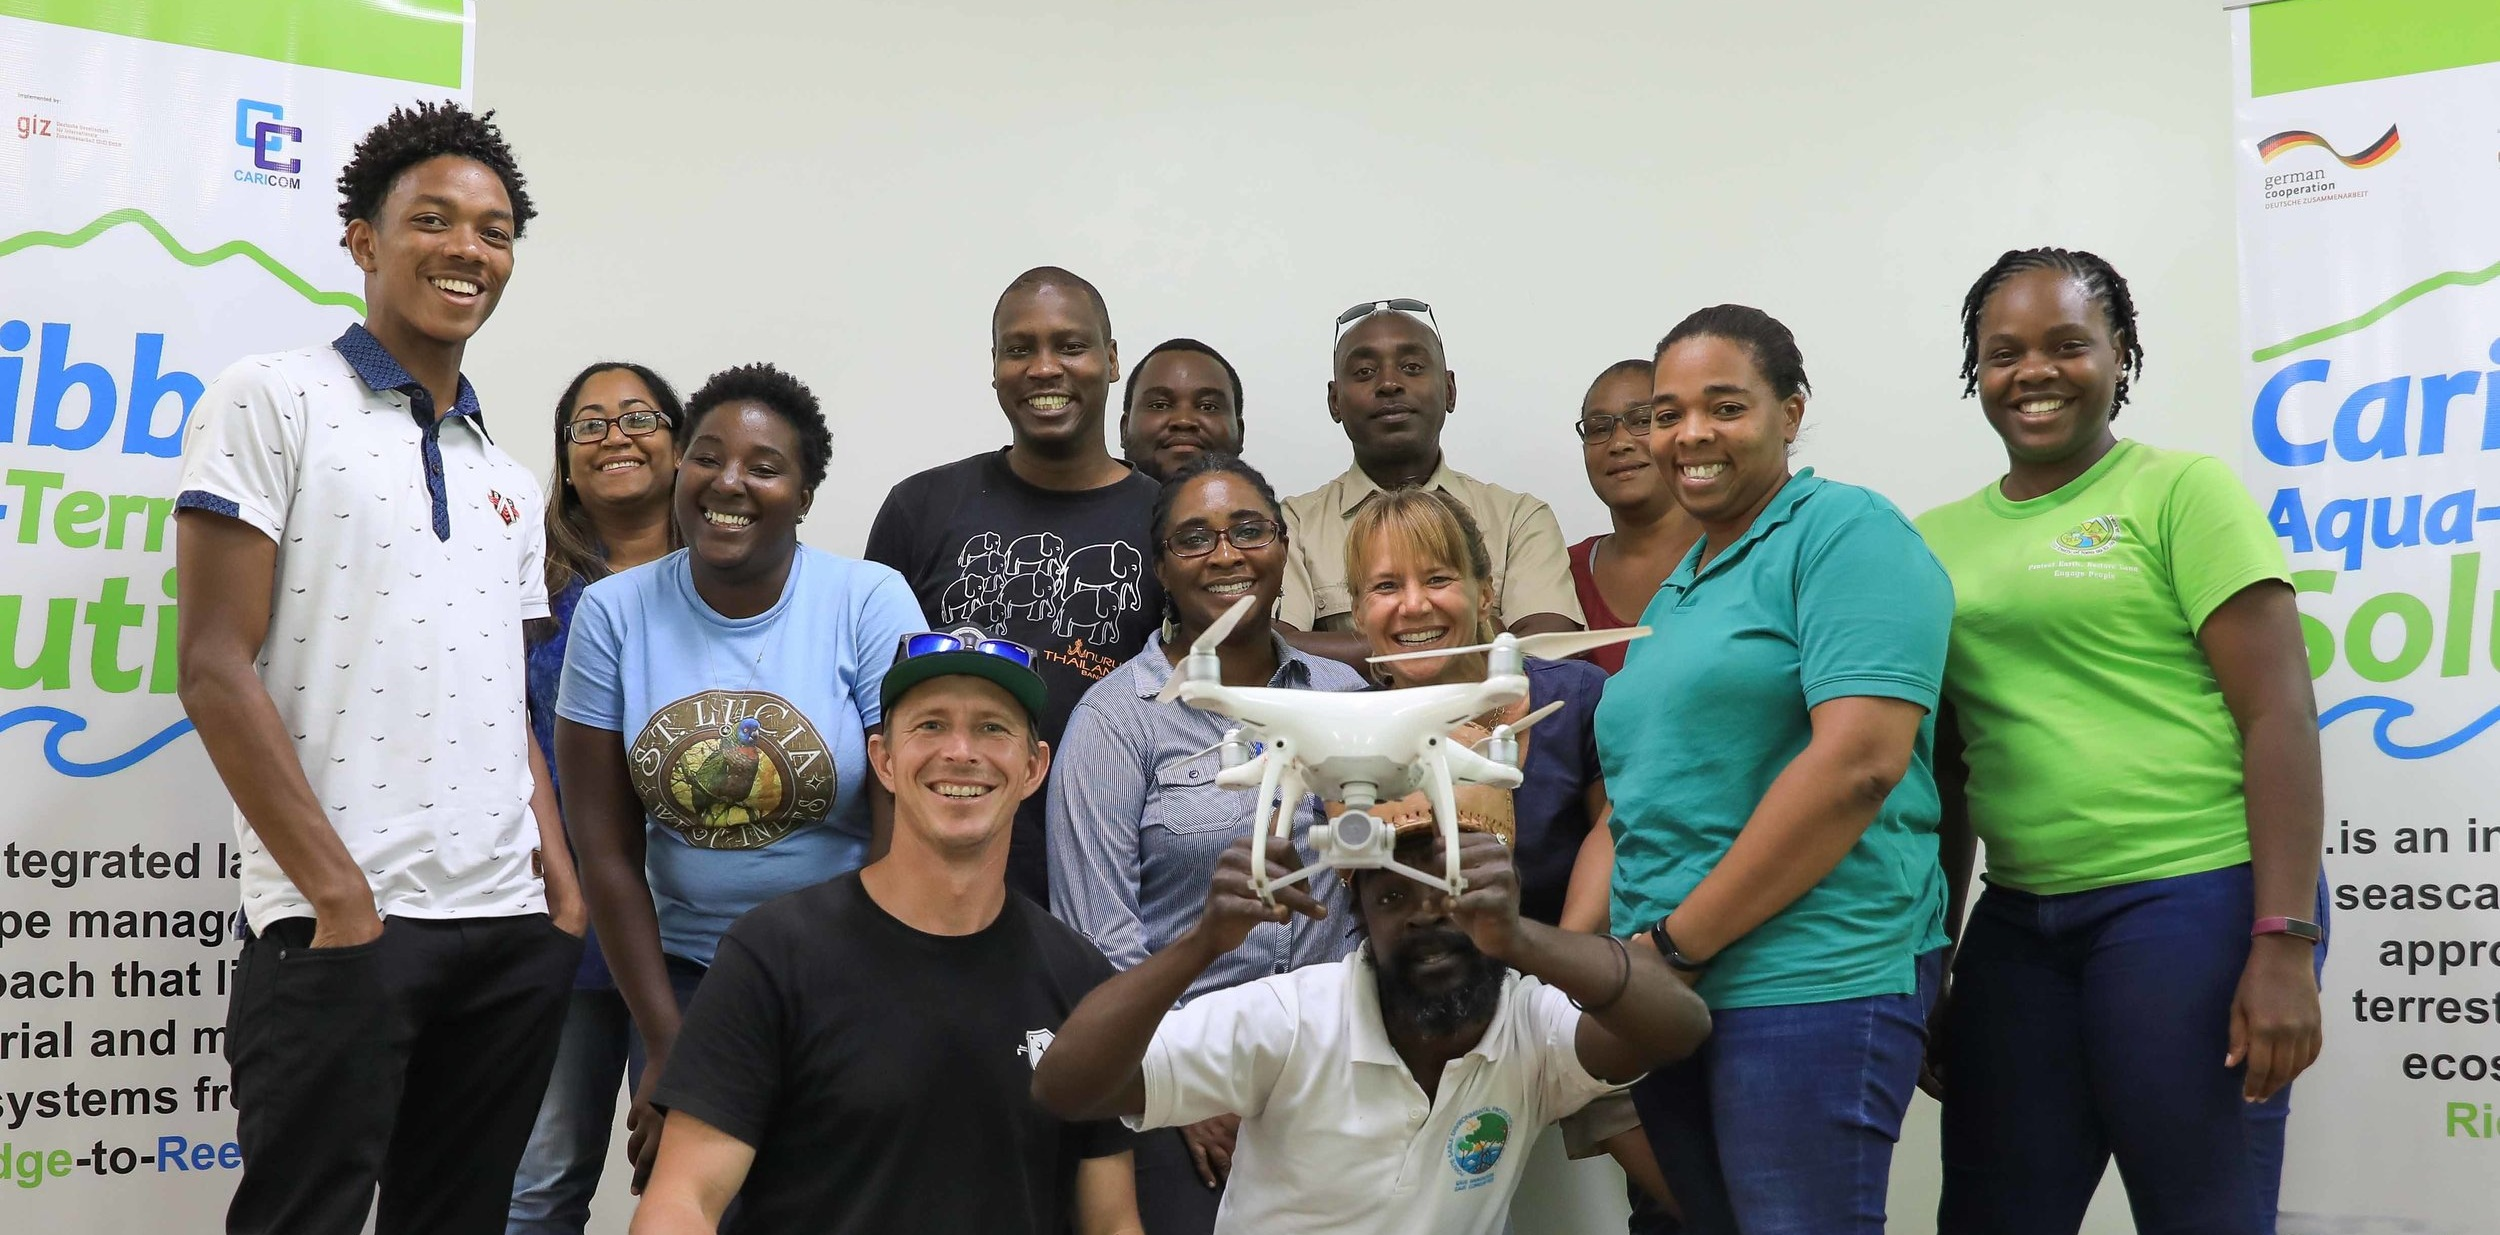 Forestry Department, Castries, St. Lucia. CATS CARPHA Drone Training Course, Nov 2018